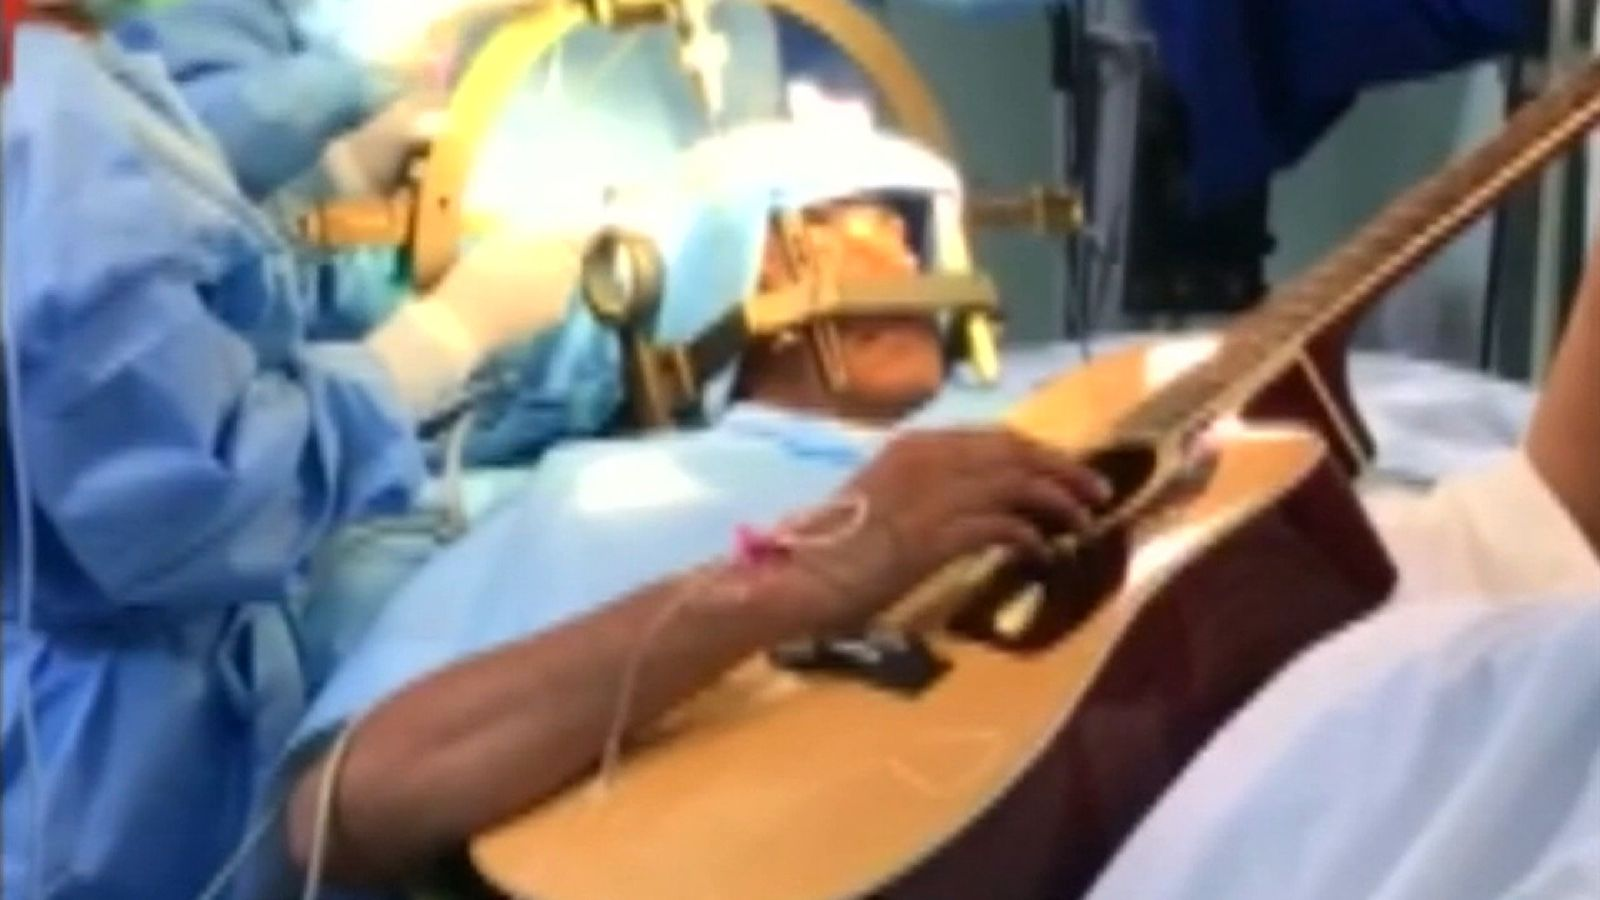 Bengaluru man treats himself by playing guitar during brain surgery